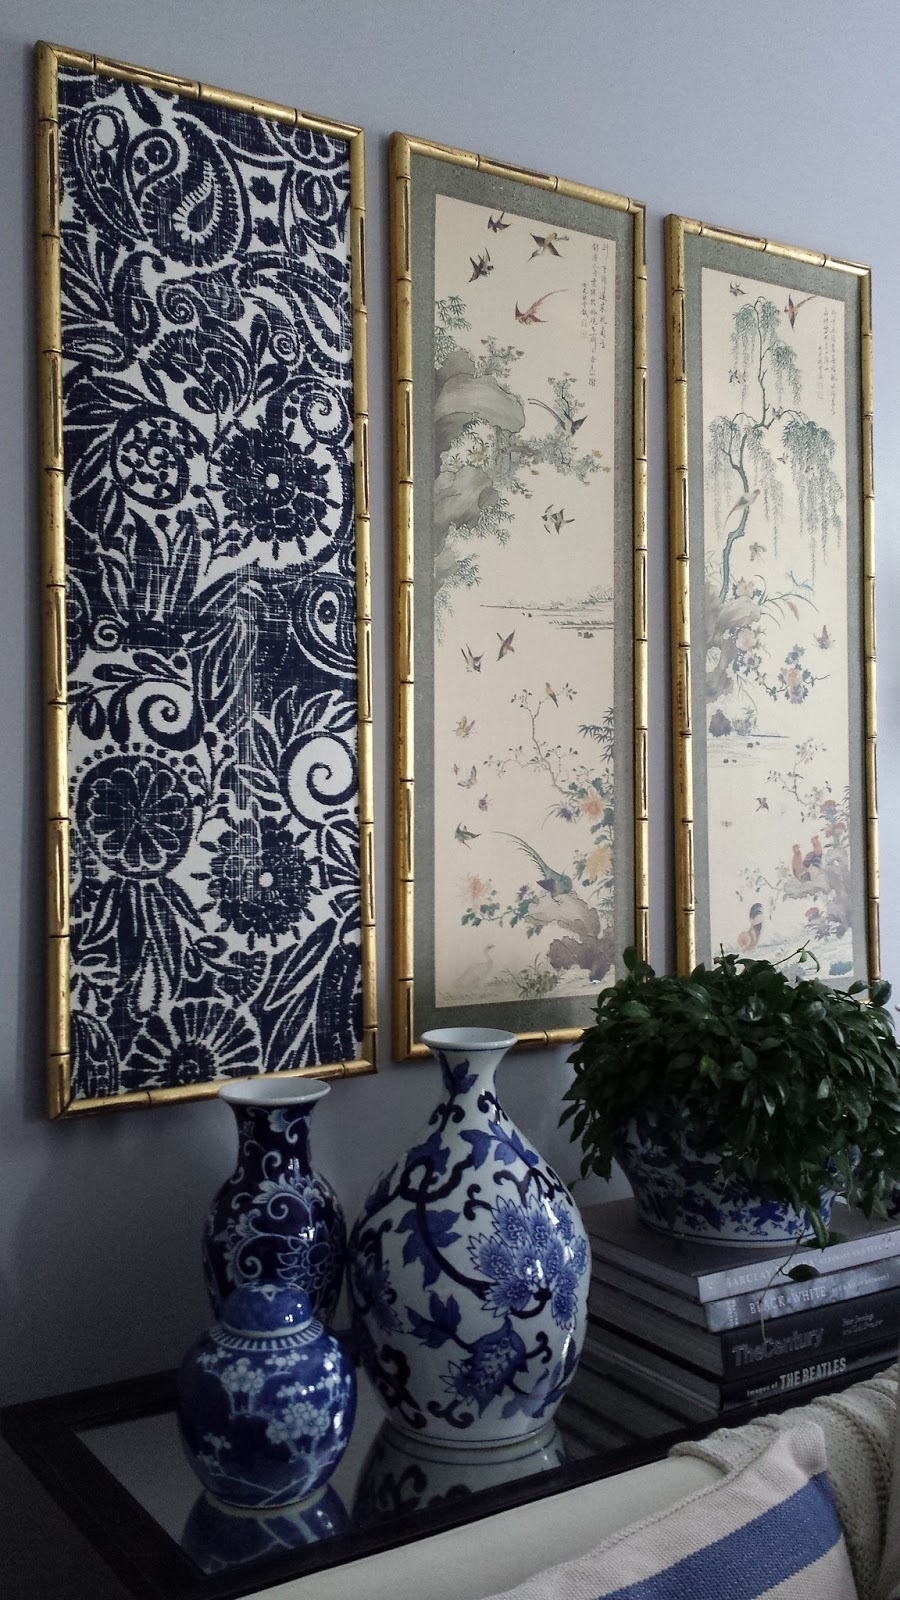 Focal Point Styling: Diy Indigo Wall Art With Framed Fabric Within Most Up To Date Diy Framed Fabric Wall Art (View 5 of 15)